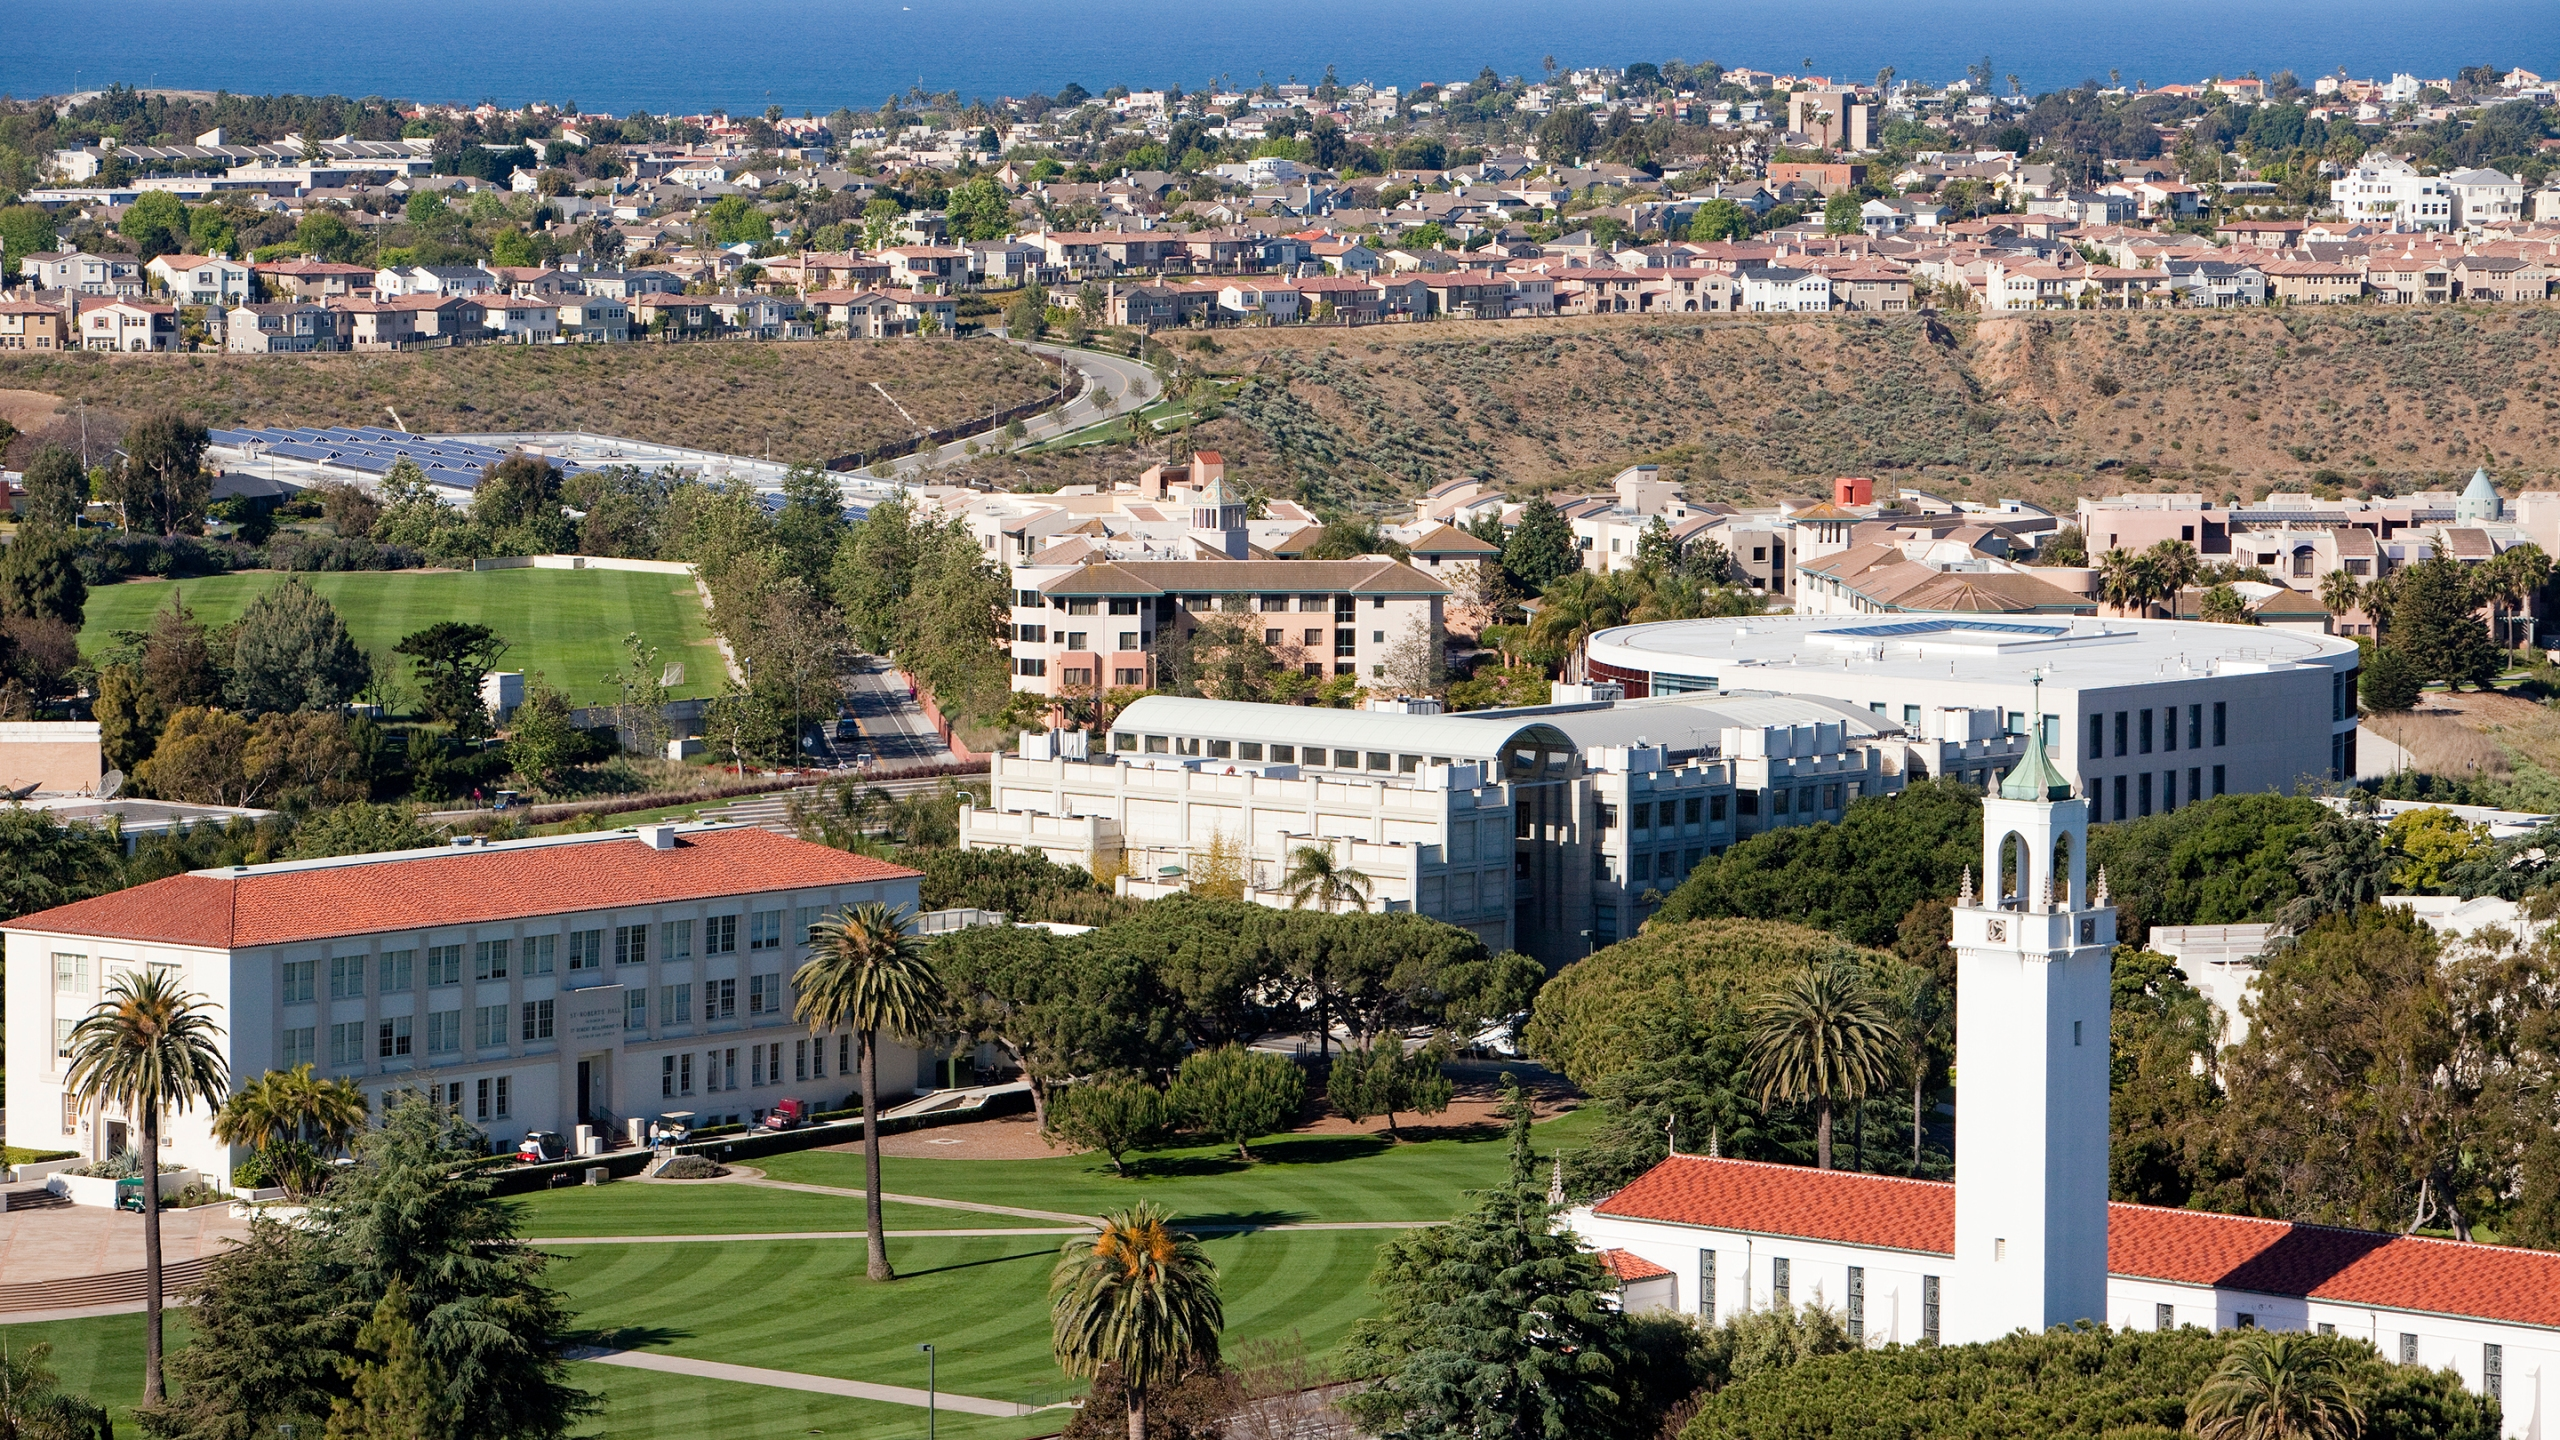 The Loyola Marymount University's Westchester campus is seen in a photo released by the school in September 2019.